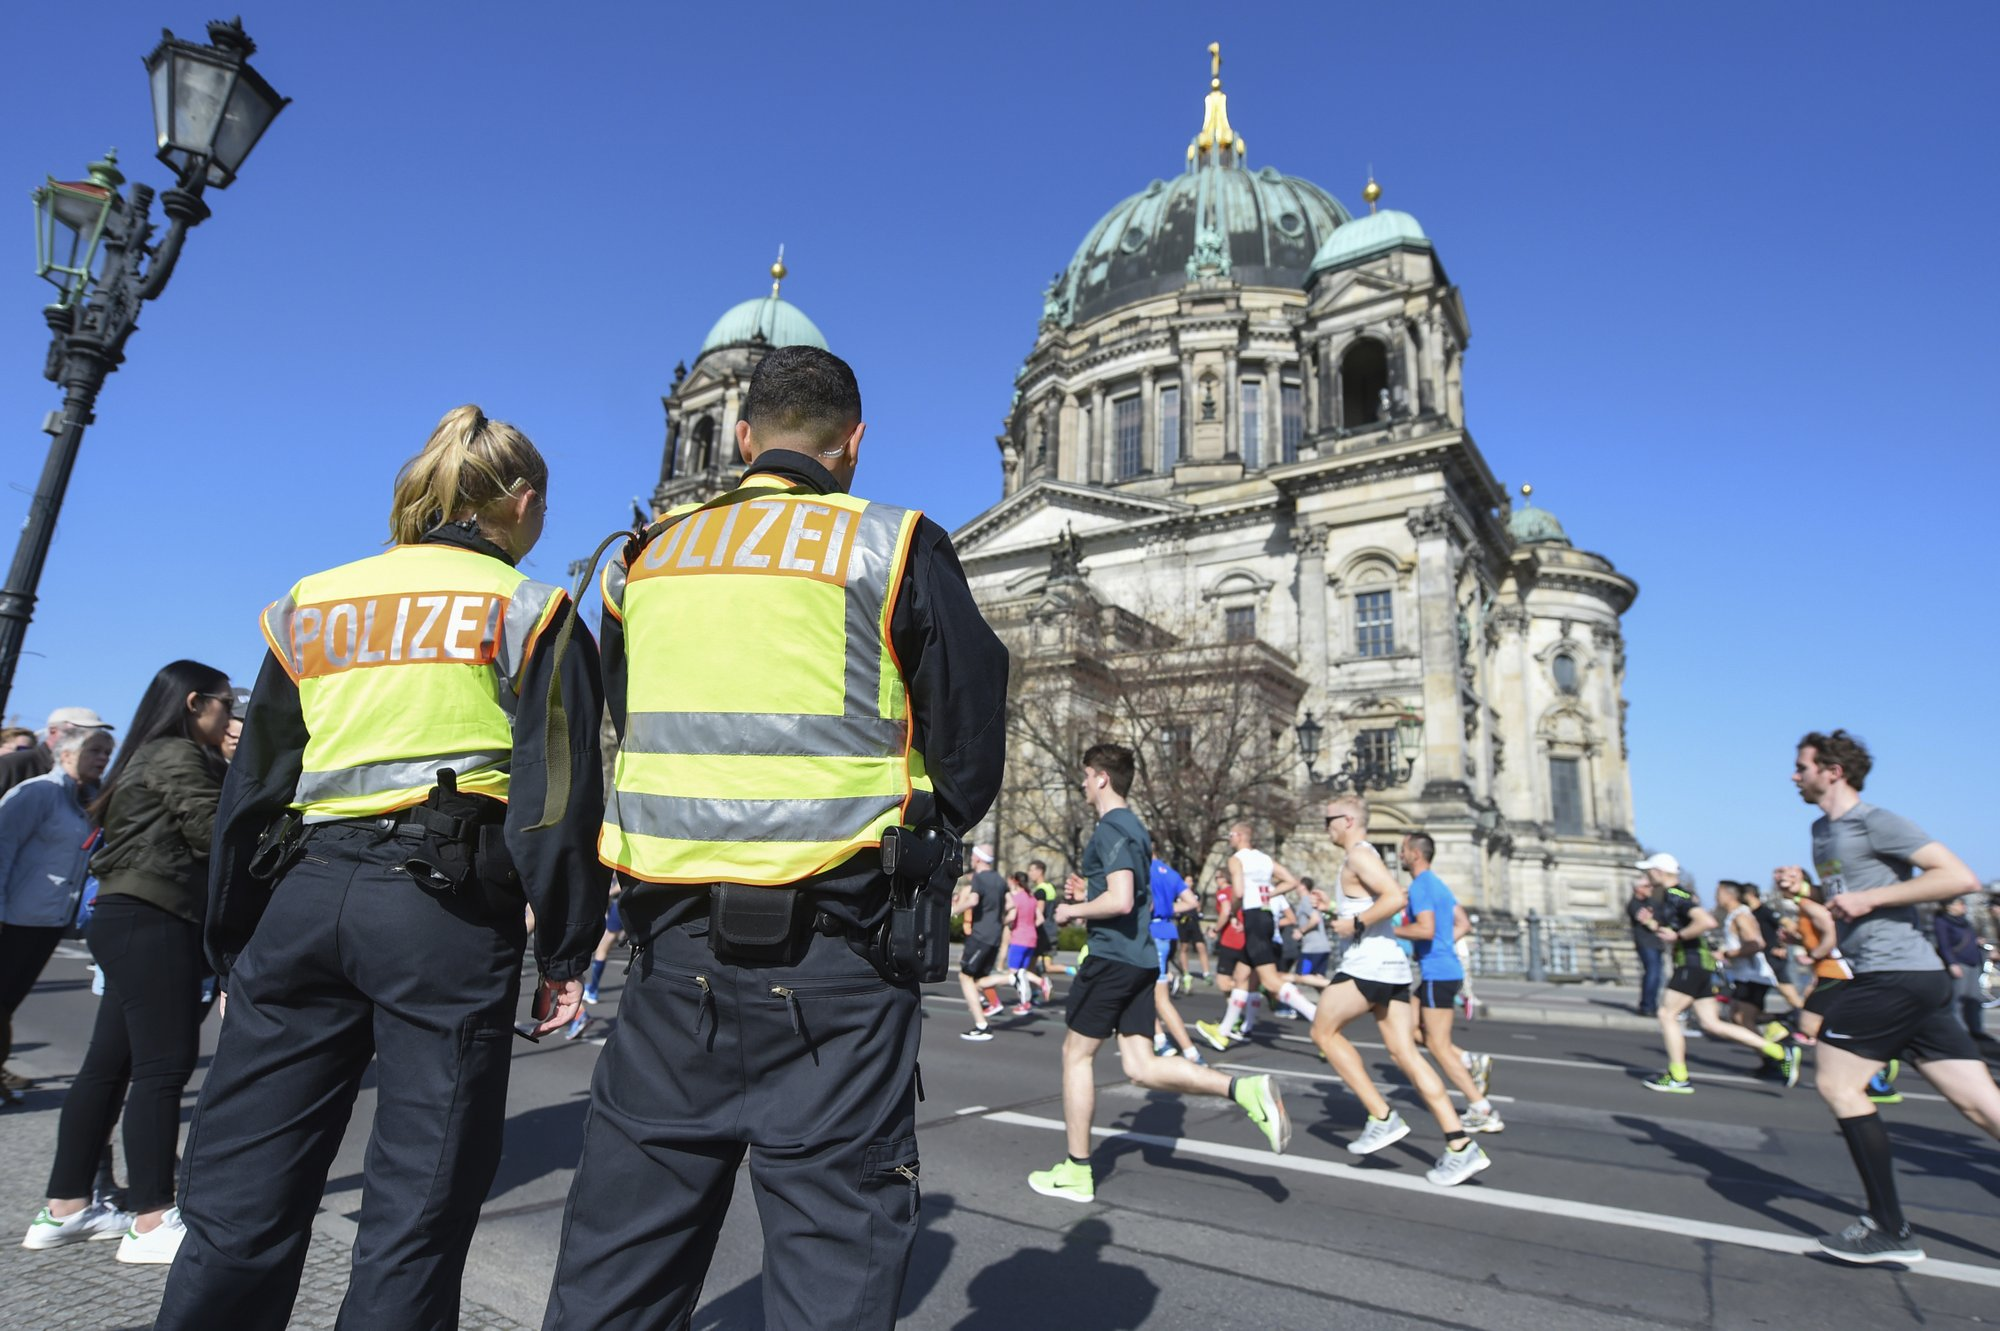 6 detained amid 'vague indications' of attack at Berlin race